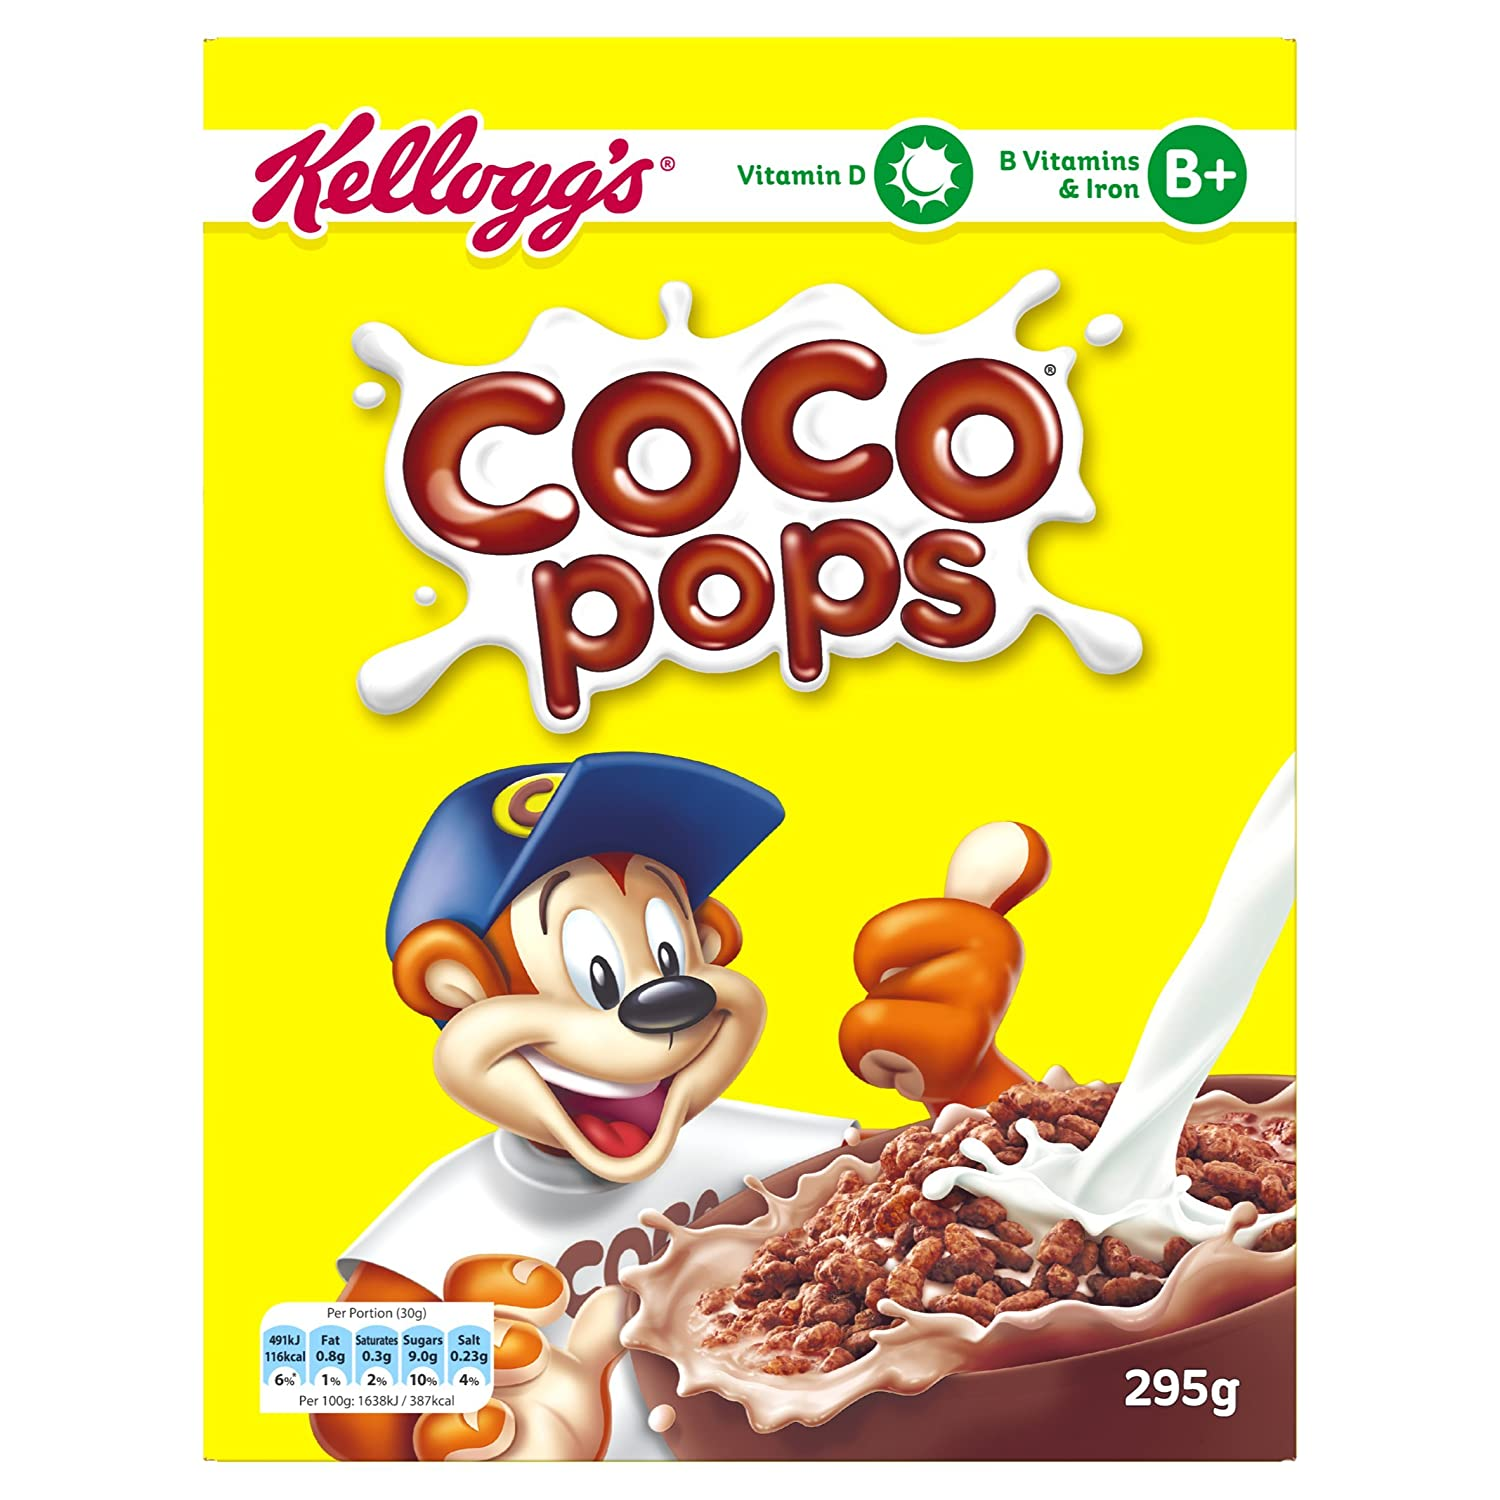 Kellogg's Coco Pops Pouch, 295 g: Amazon.in: Grocery & Gourmet Foods